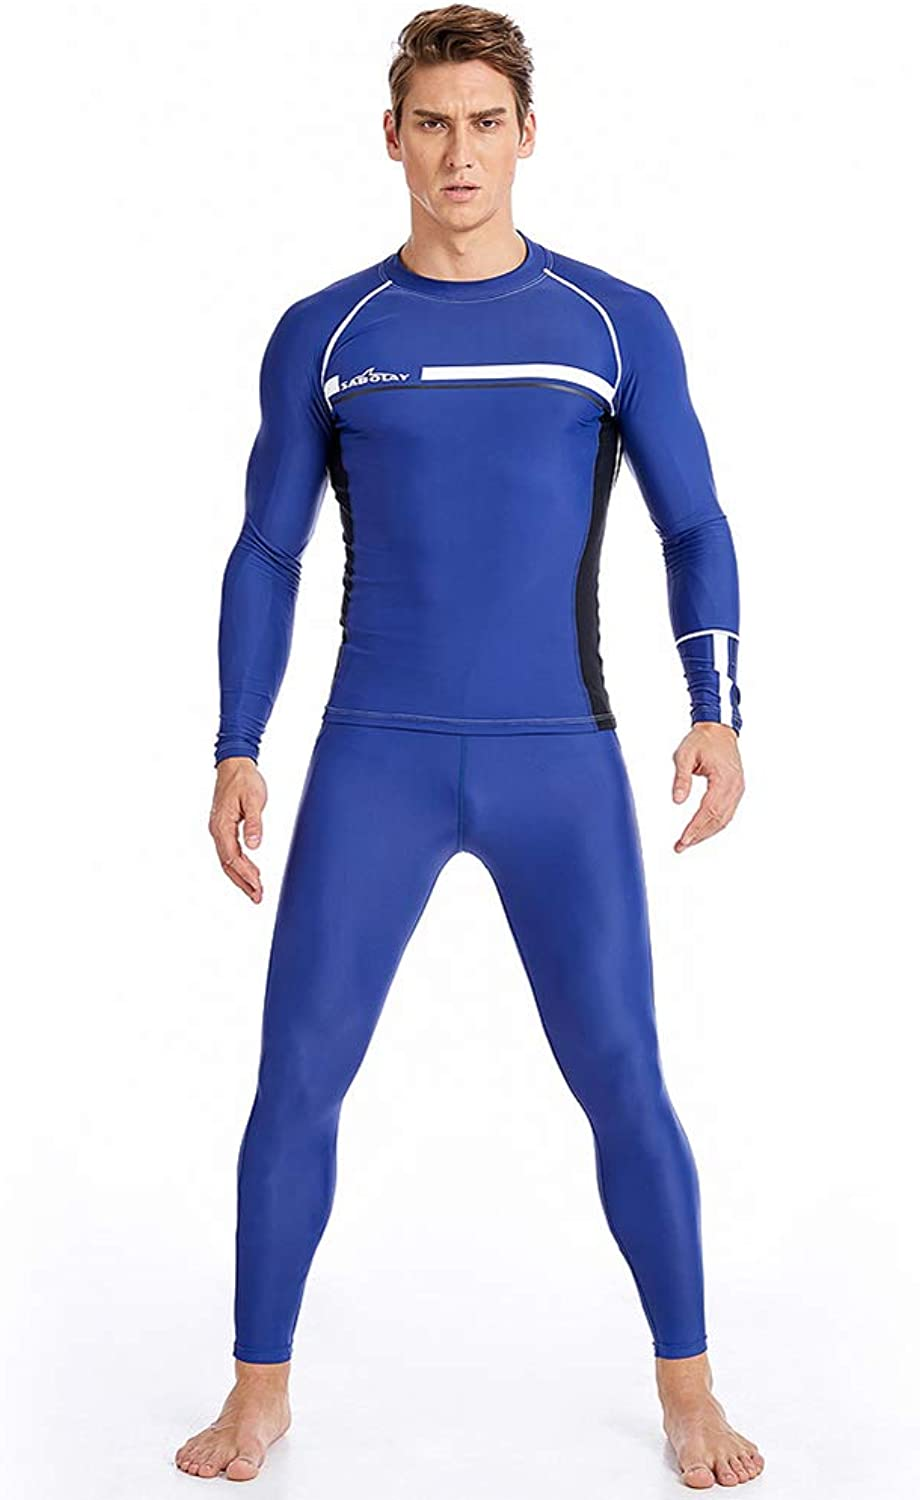 Men's Wetsuits Plus Size Long Sleeve Diving Suits Sunscreen Jellyfish Clothes QuickDry Tights Swimwear for Scuba Swimming Surfing Snorkeling